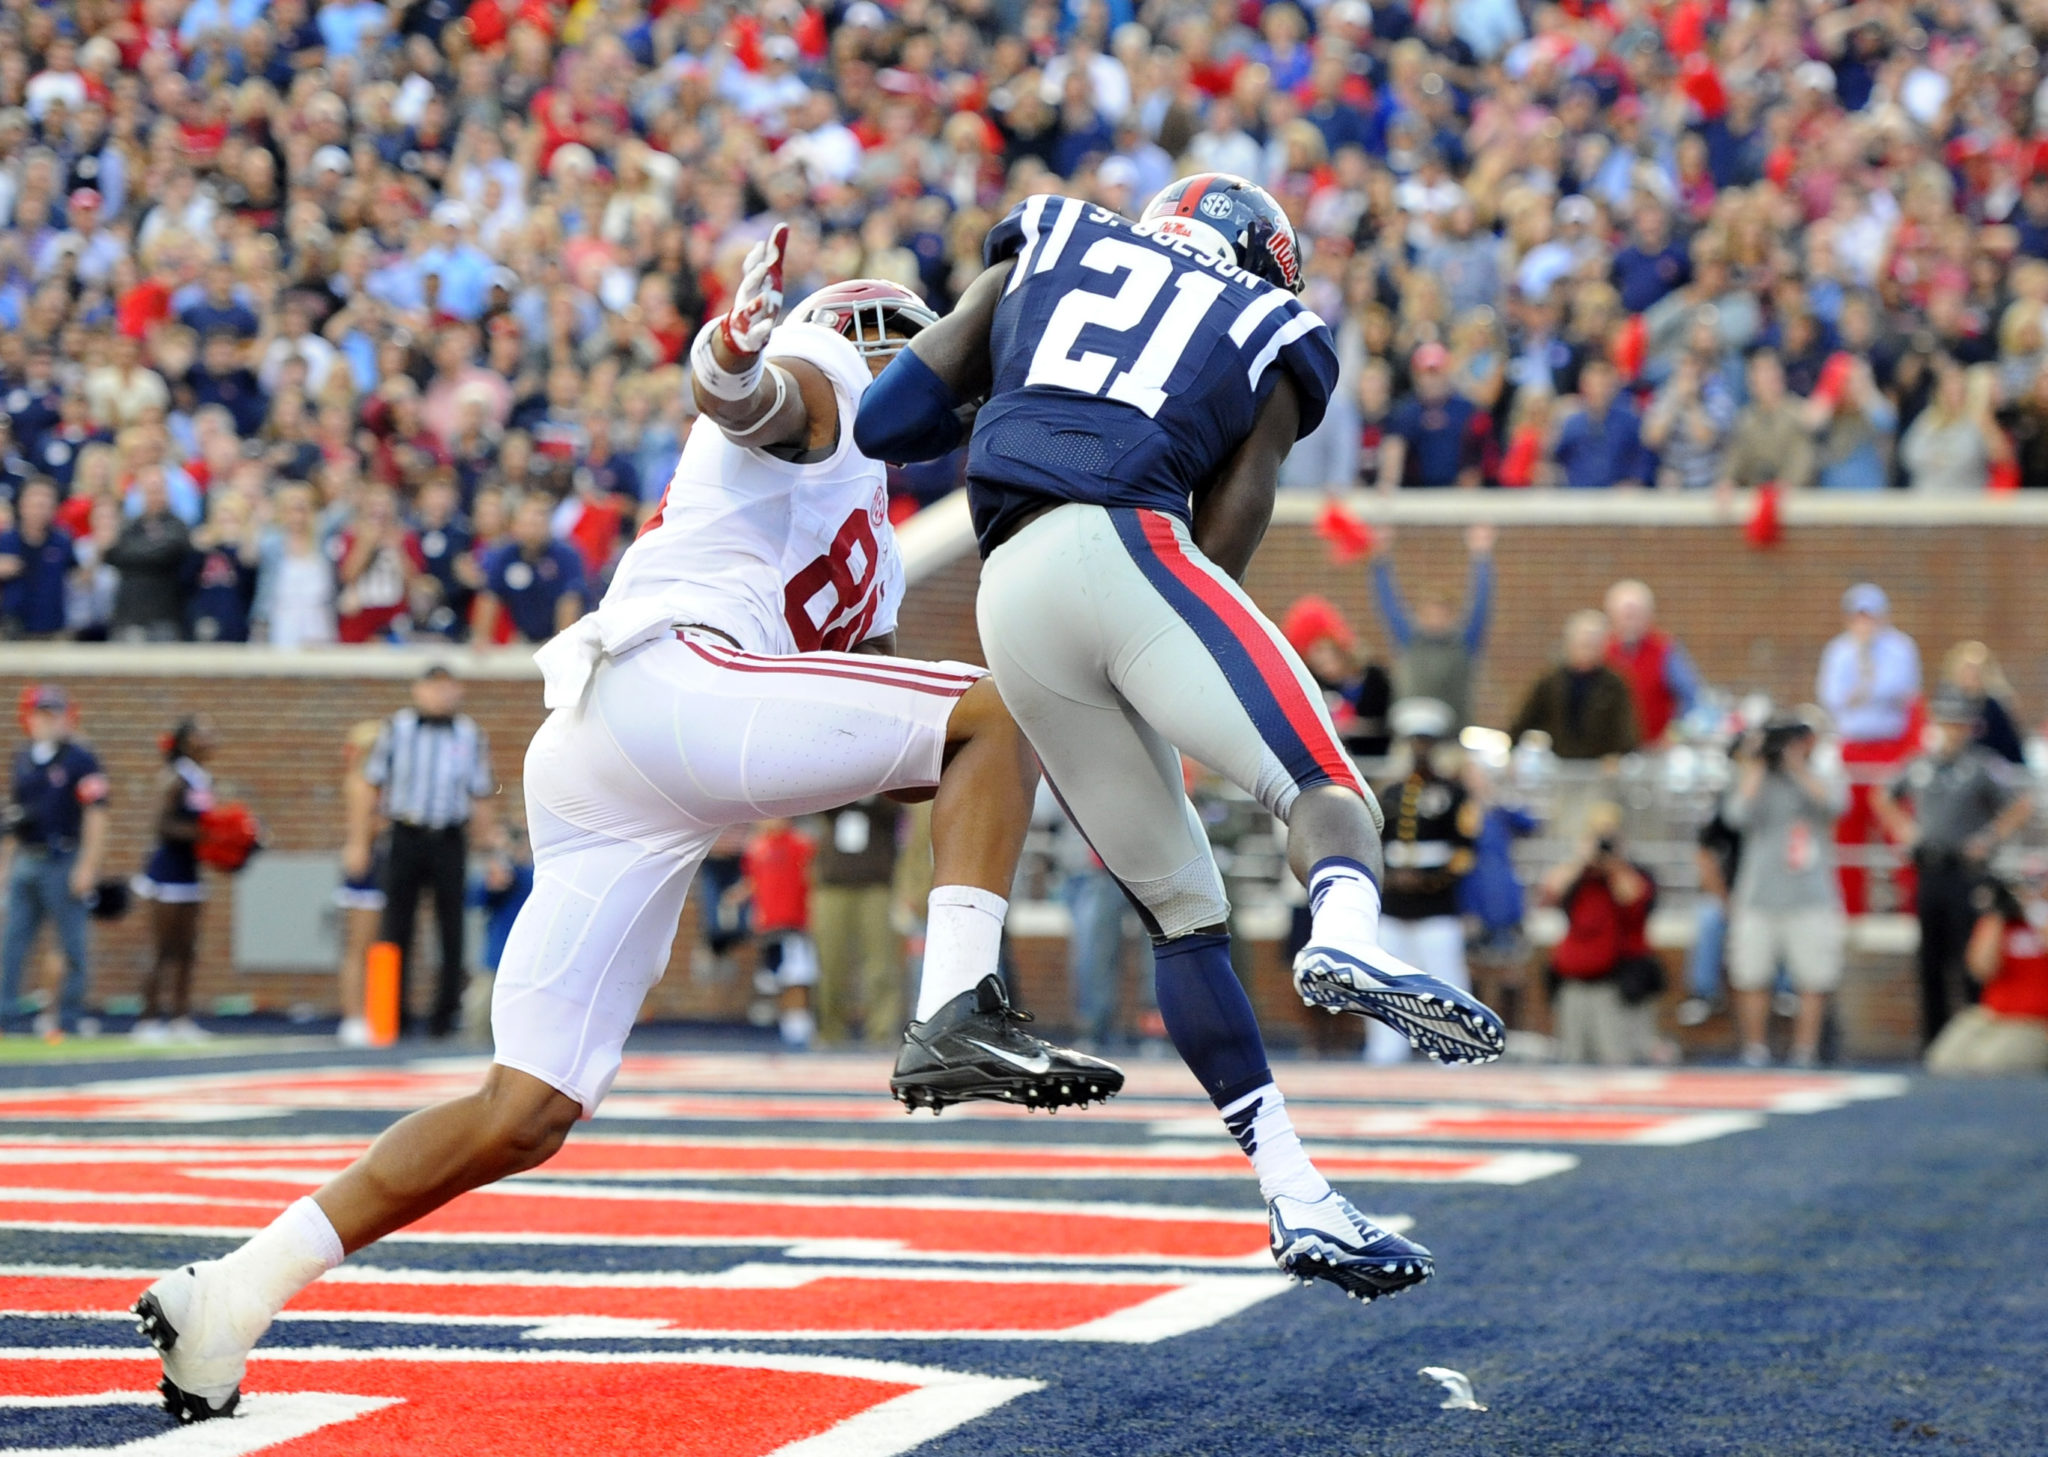 Oct 4, 2014; Oxford, MS, USA; Mississippi Rebels defensive back Senquez Golson (21) intercepts a pass in the end zone intended for Alabama Crimson Tide tight end O.J. Howard (88) to win the game during the second half at Vaught-Hemingway Stadium. The Rebels won 23-17. Mandatory Credit: Christopher Hanewinckel-USA TODAY Sports